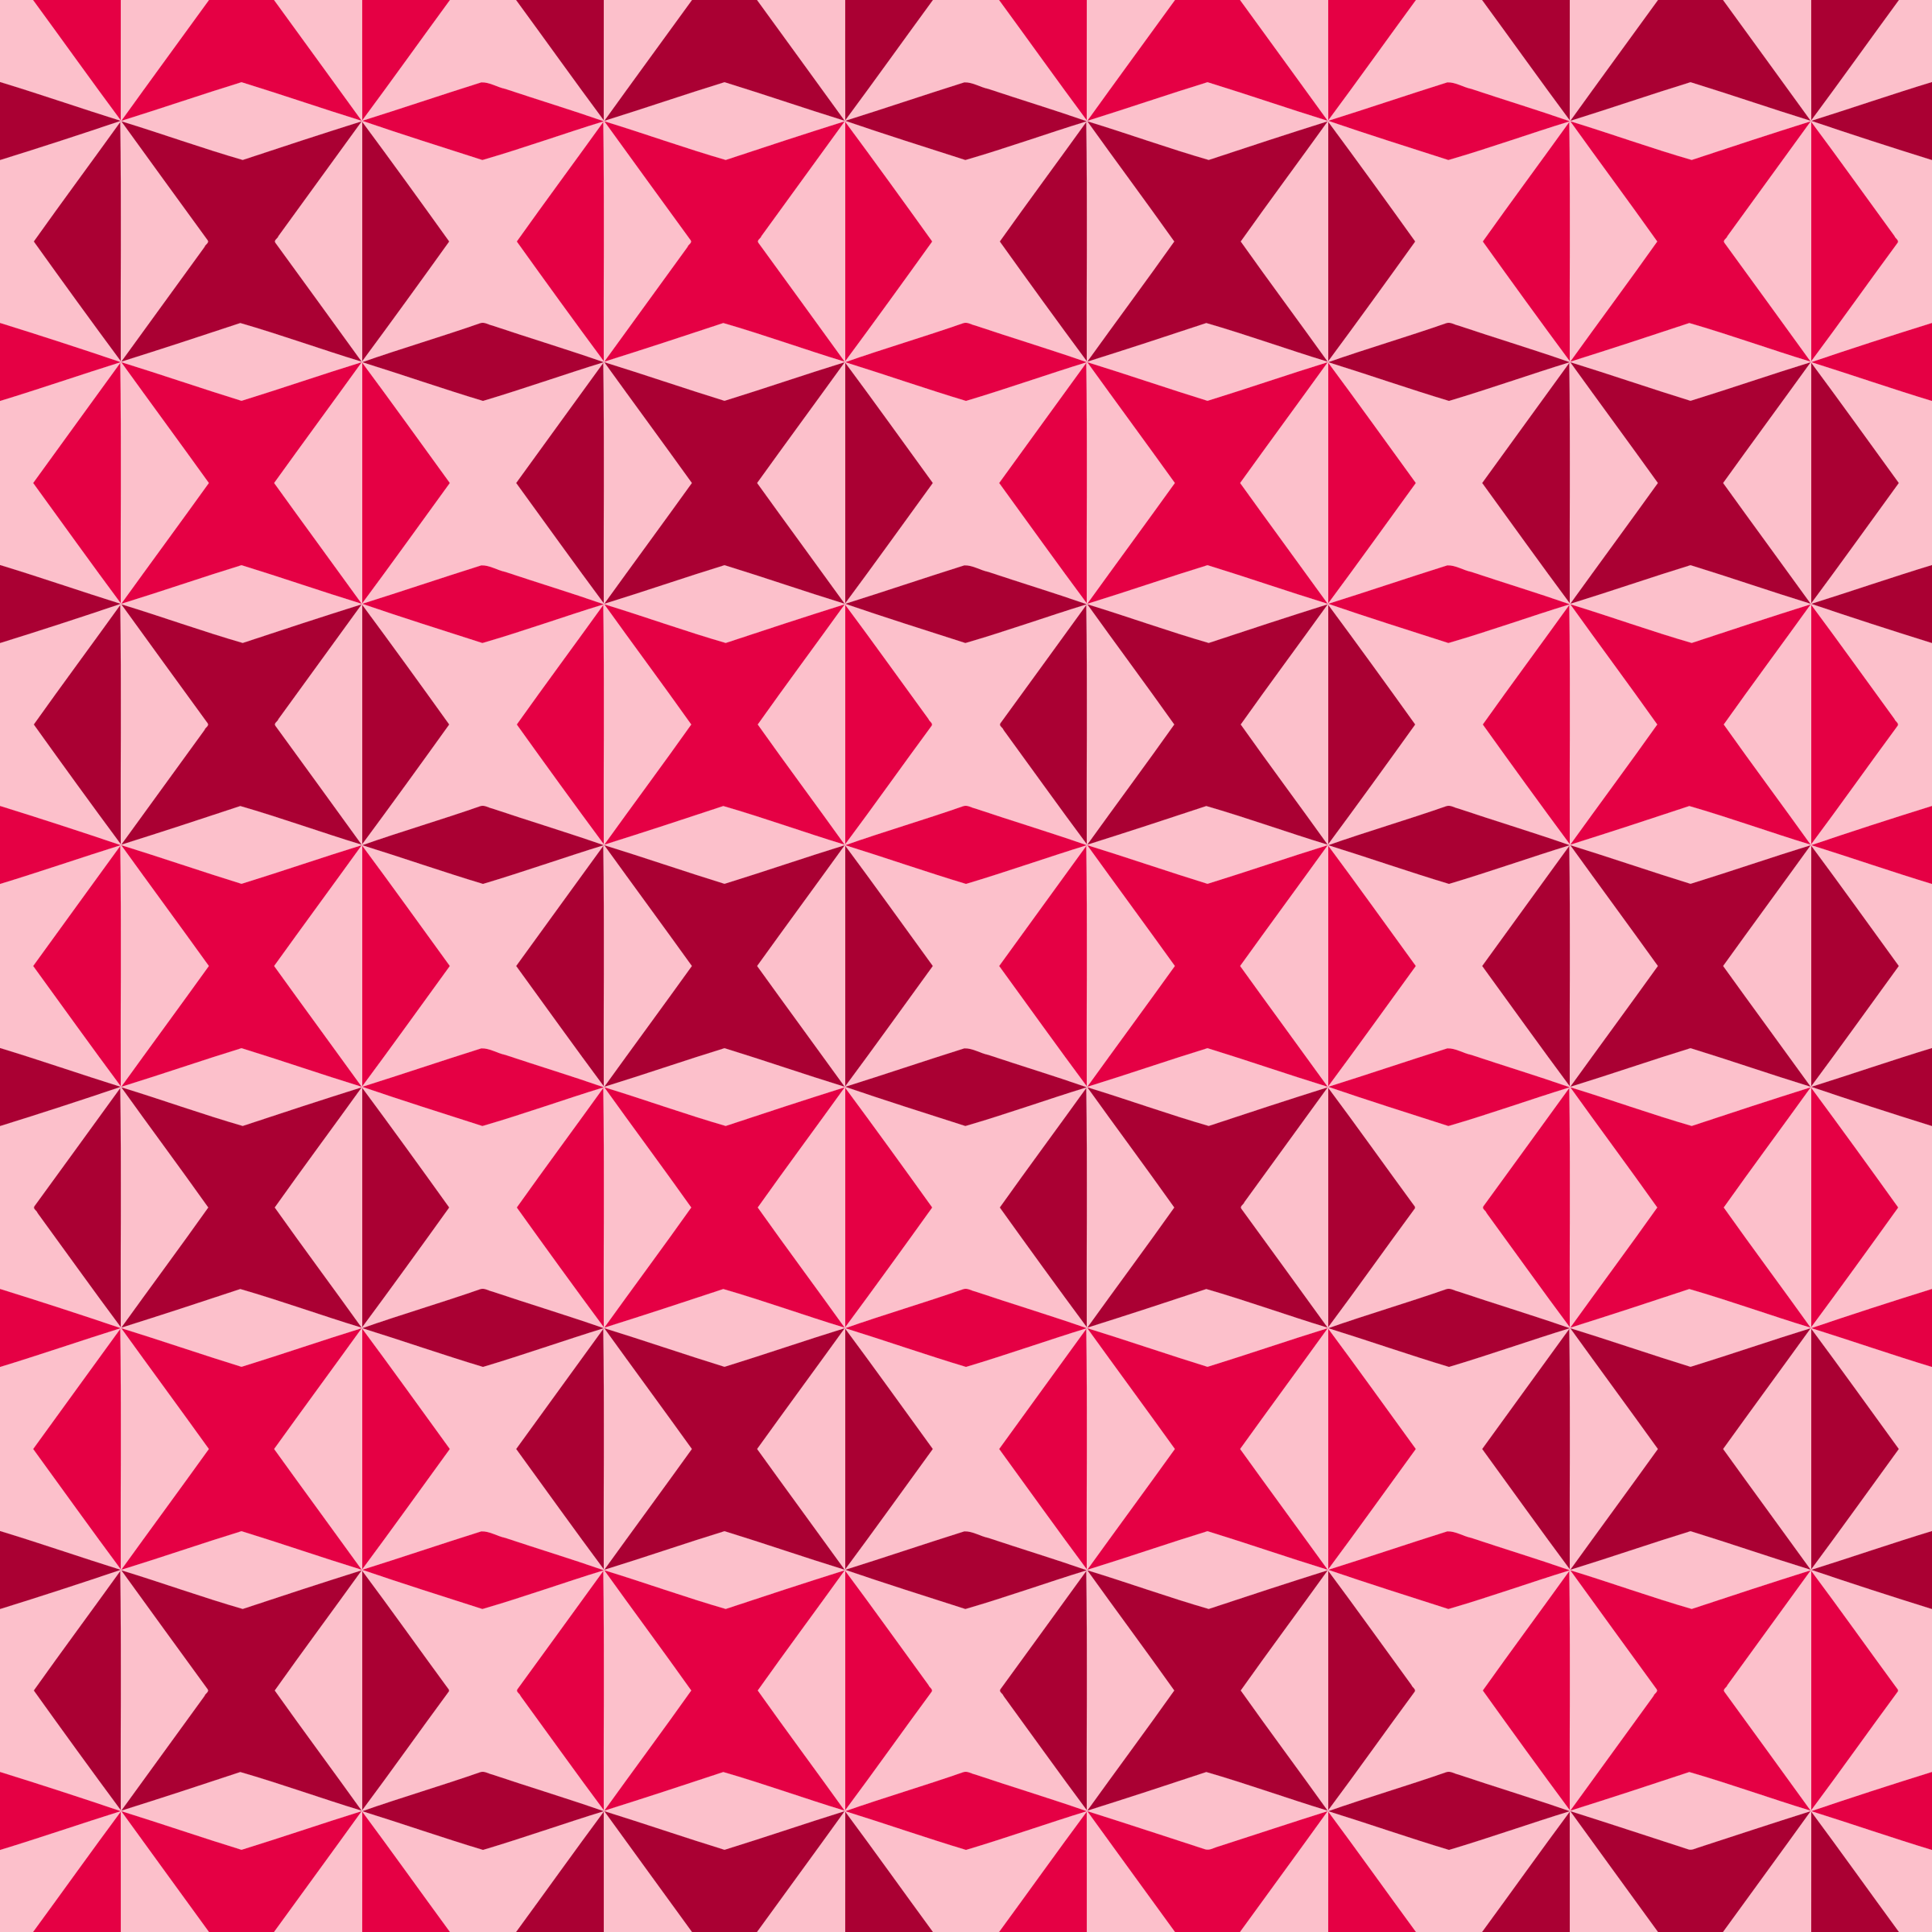 Background pattern 26 (colour) by Firkin